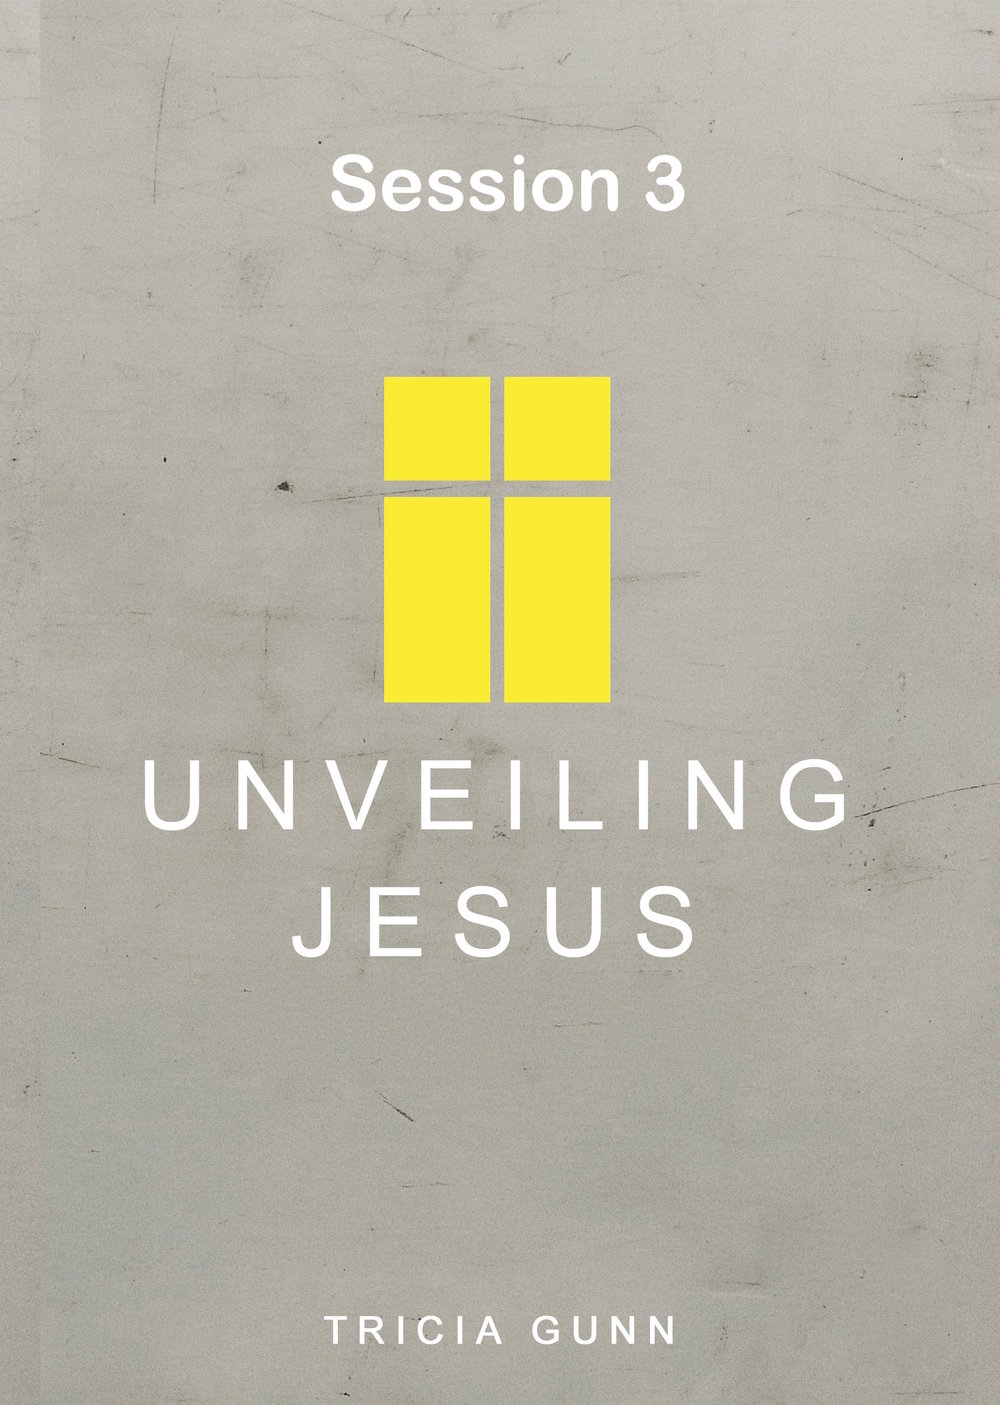 Unveiling-Jesus_1-10_download-3.jpg